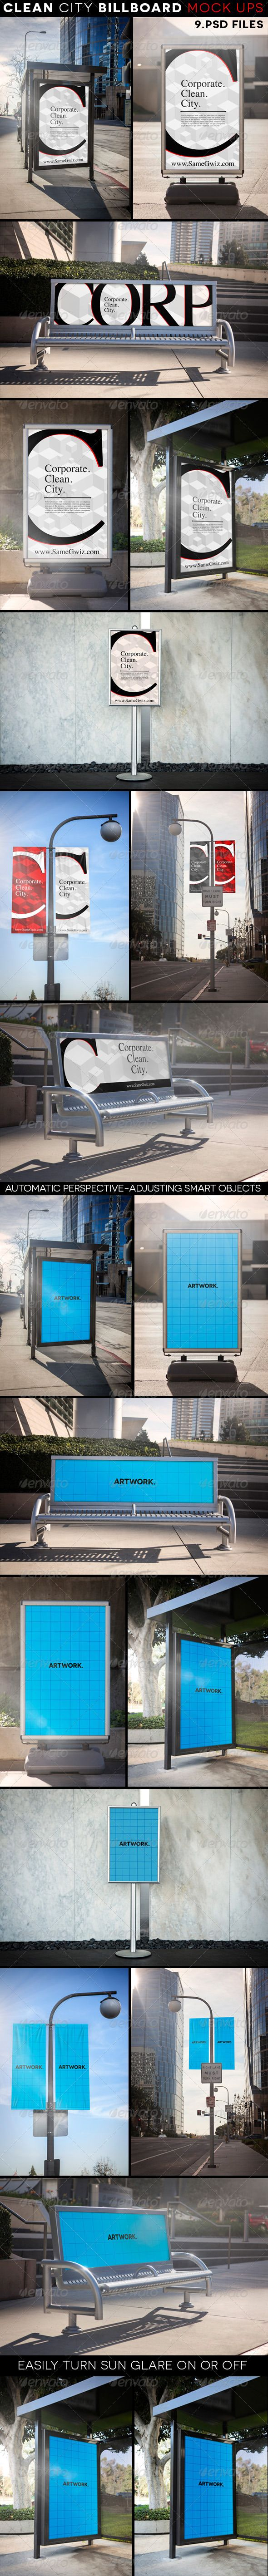 Clean City Advertising Billboard Mock-Ups Download: http://graphicriver.net/item/clean-city-advertising-billboard-mockups/7070438?ref=ksioks